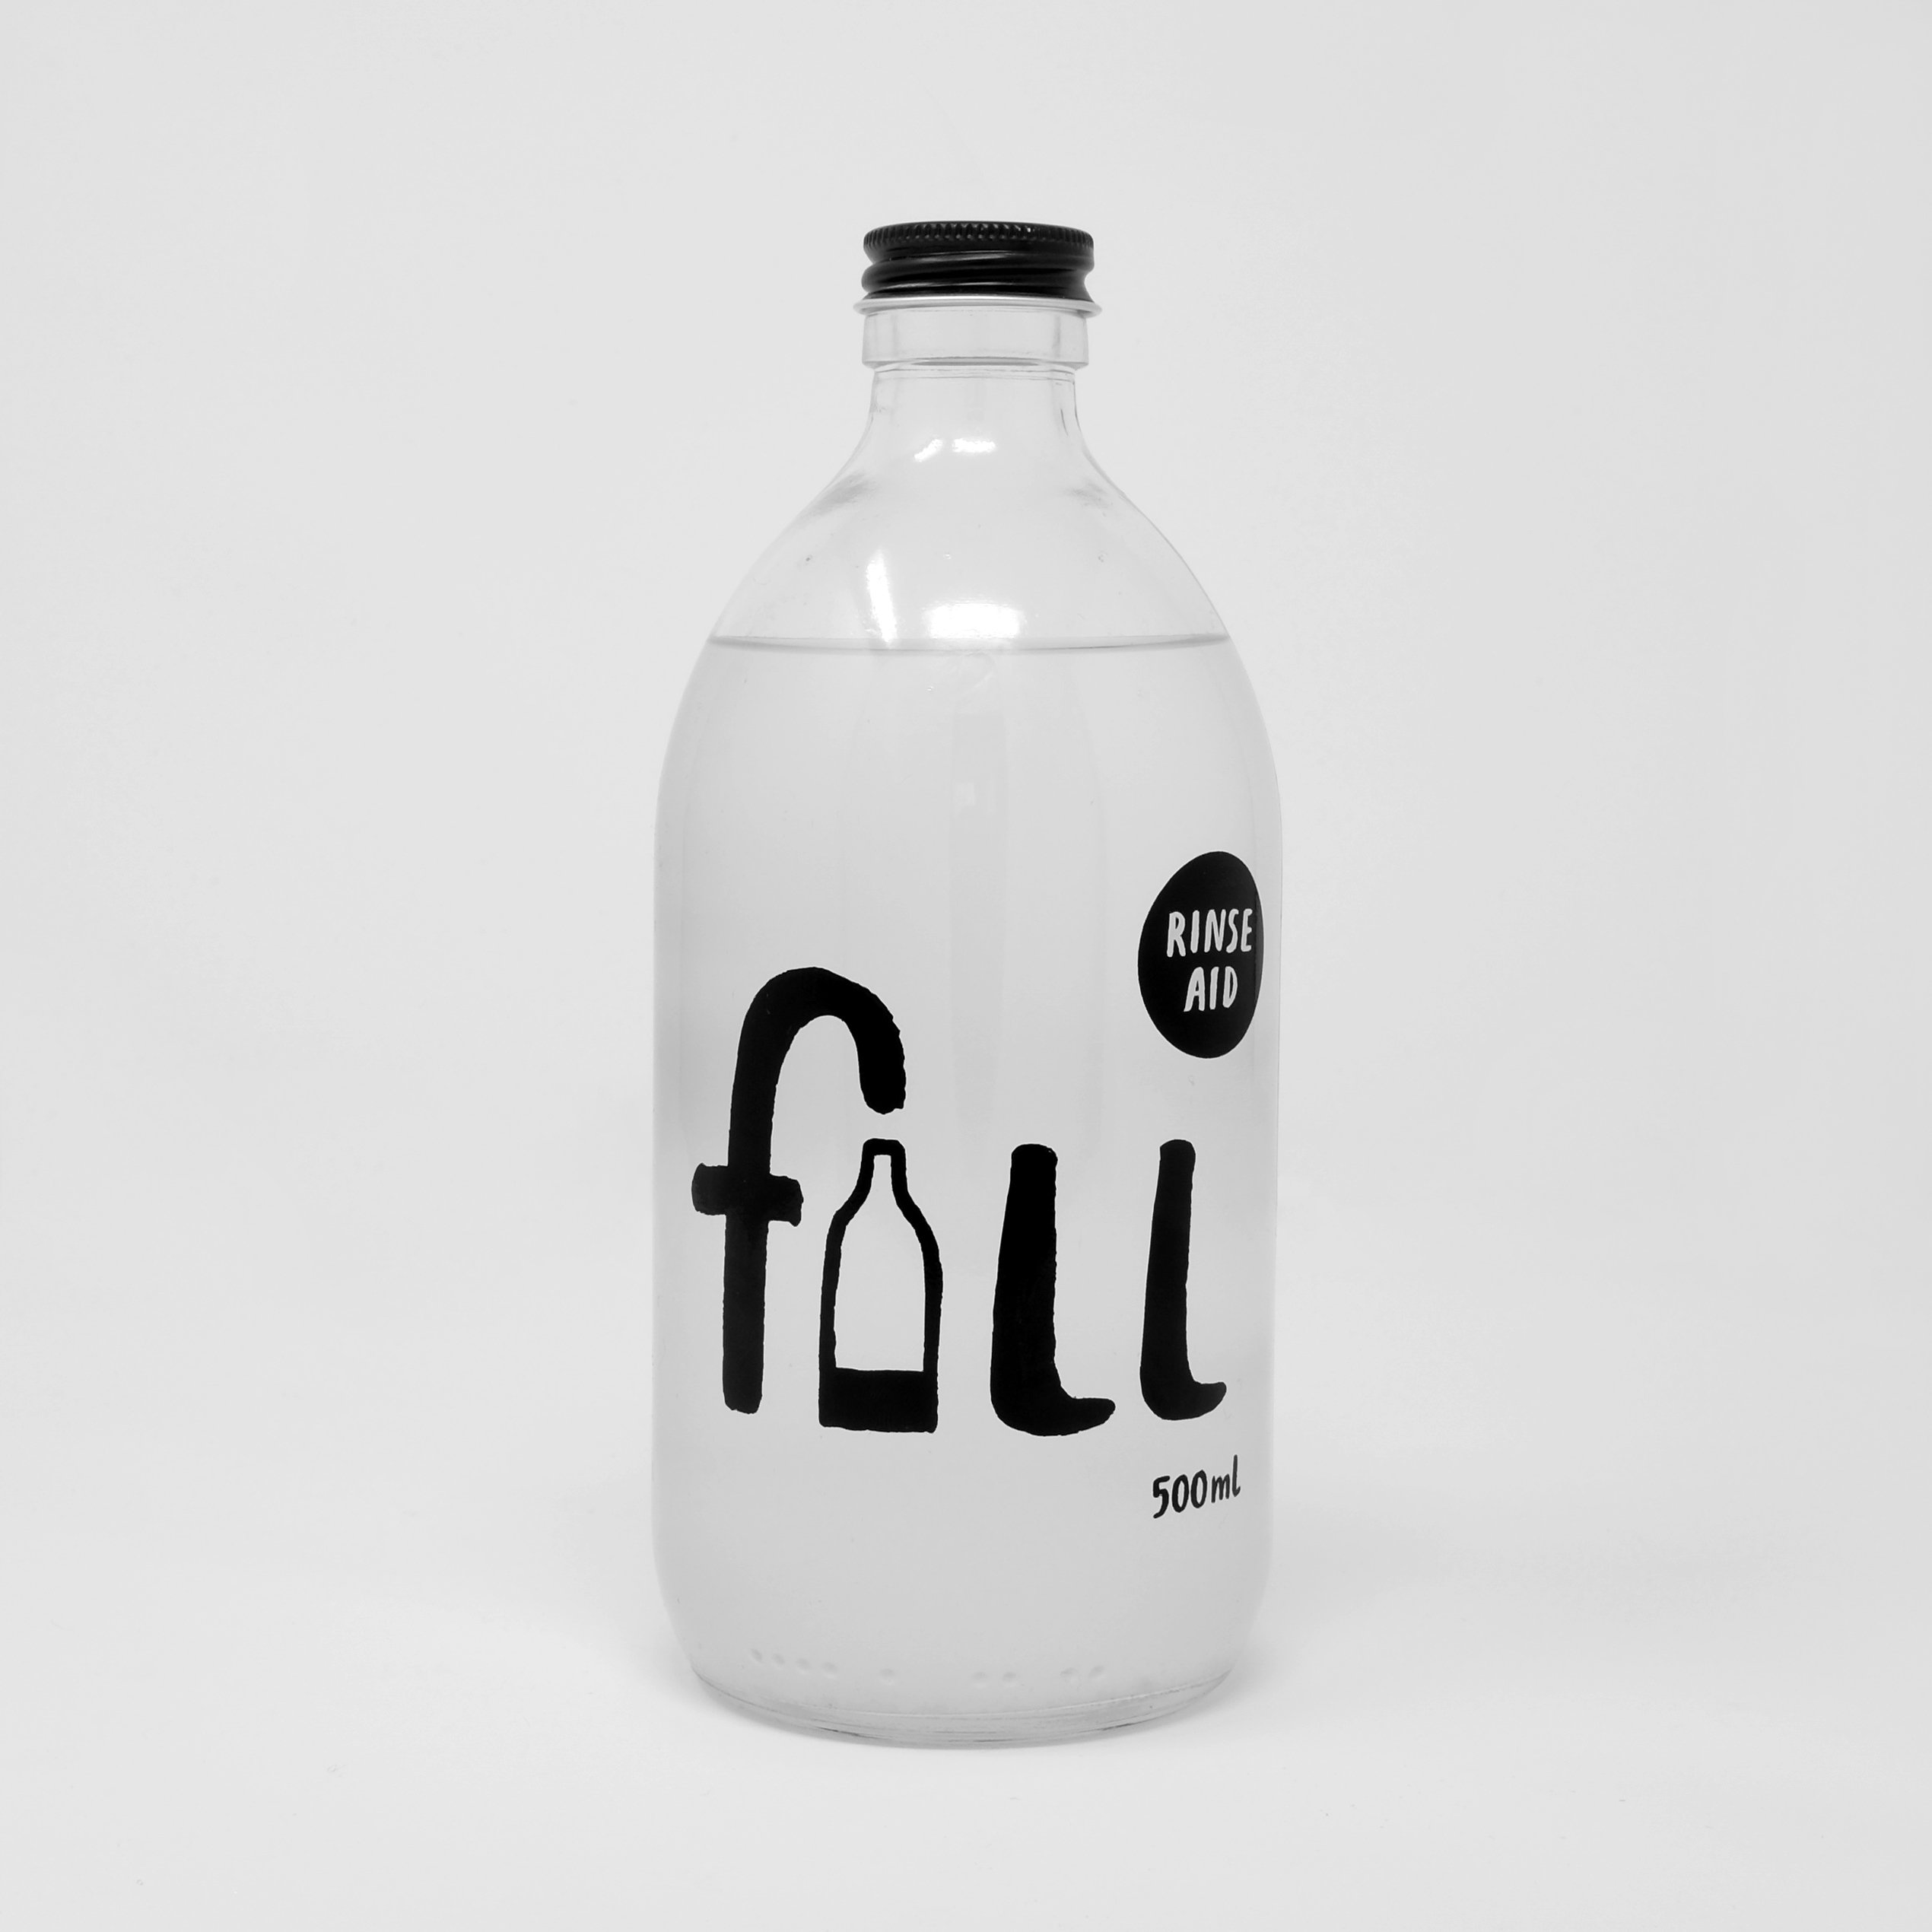 Eco Rinse Aid 500ml Glass Bottle by Fill Refill